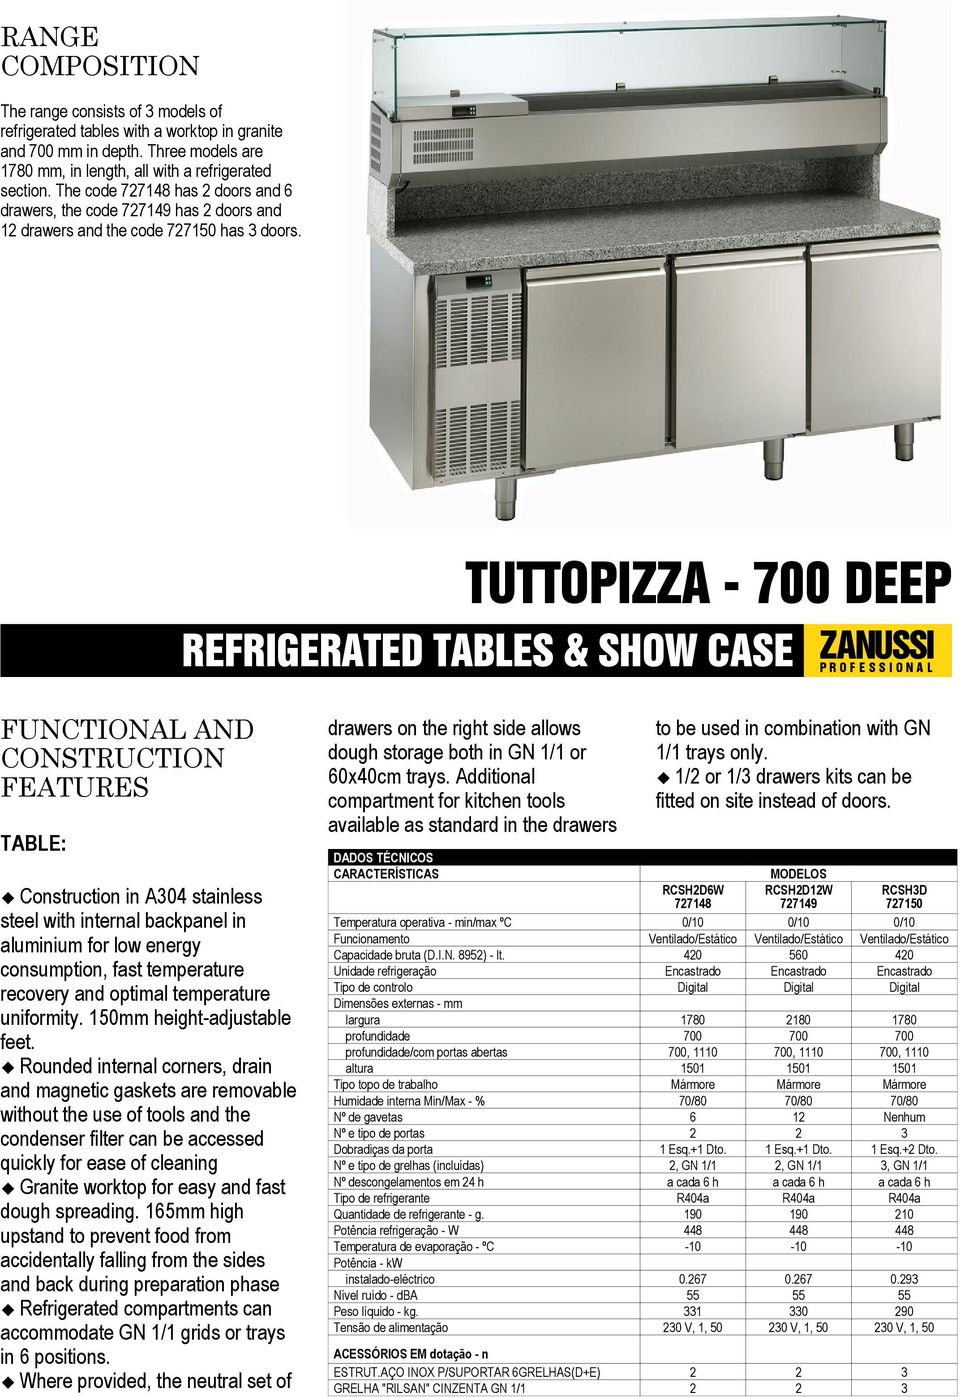 REFRIGERATED TABLES & SHOW CASE FUNCTIONAL AND CONSTRUCTION FEATURES TABLE: Construction in A304 stainless steel with internal backpanel in aluminium for low energy consumption, fast temperature